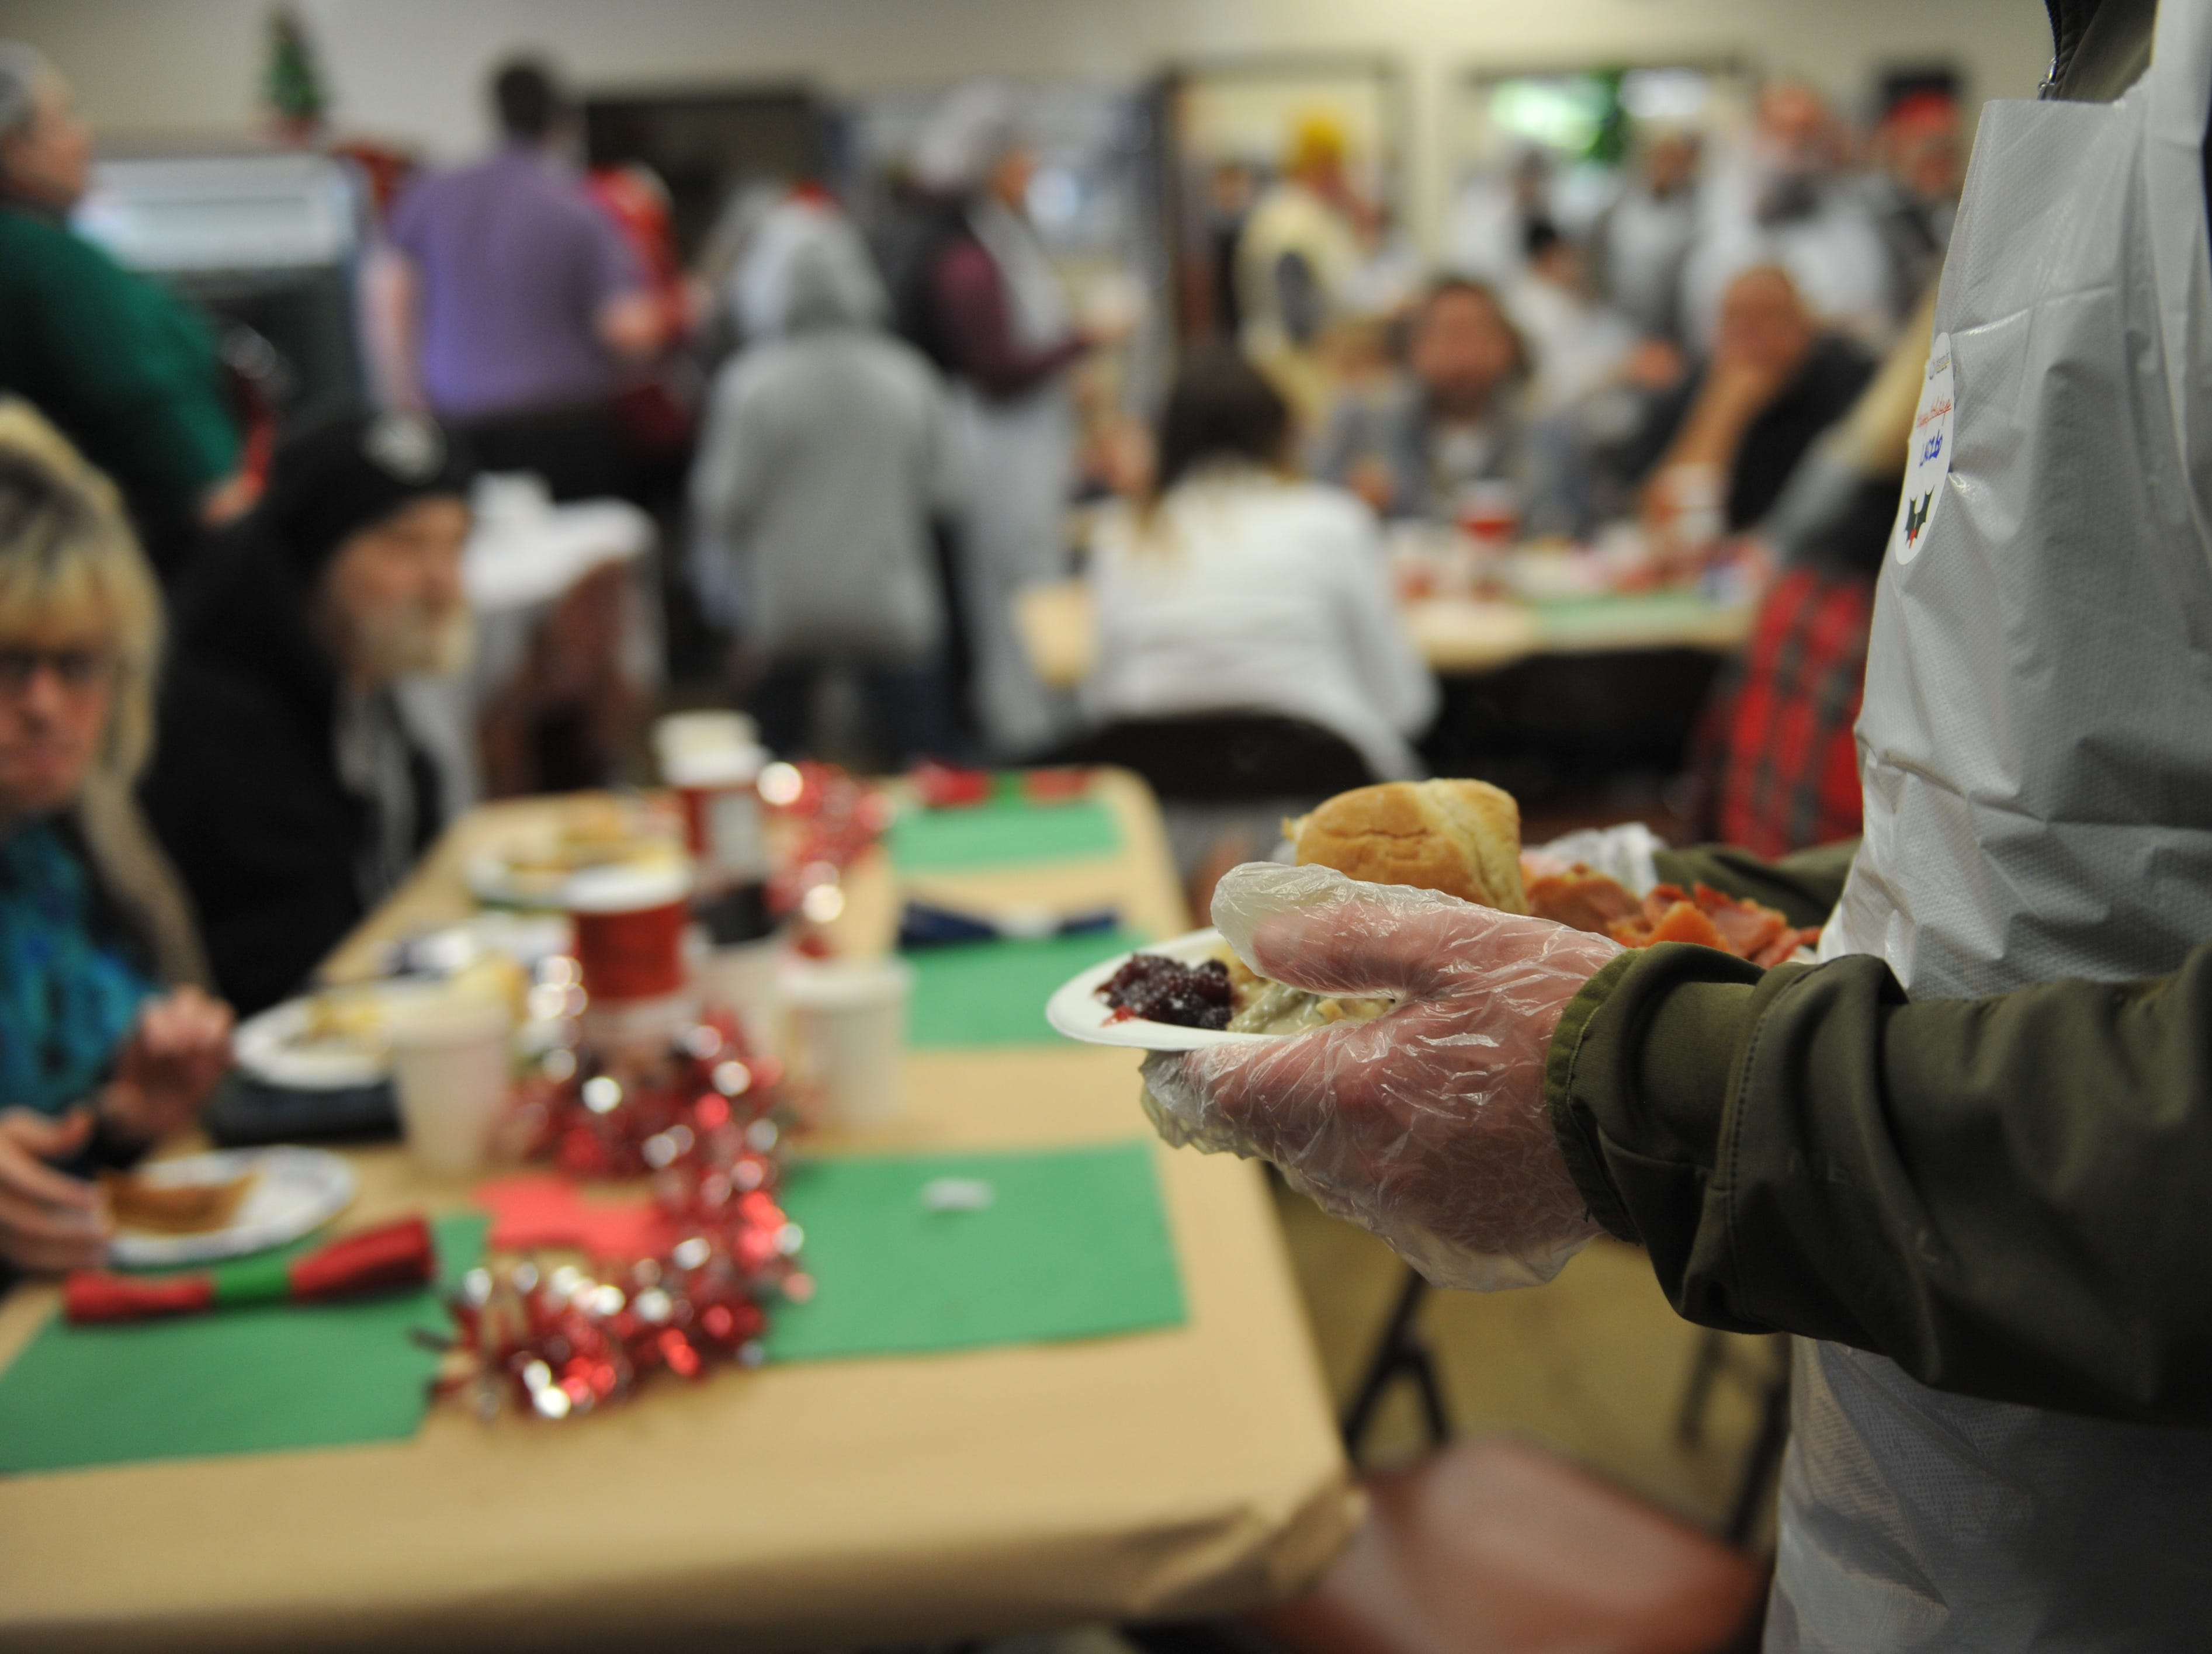 A volunteer brings out a meal at the OMNI center on Christmas.